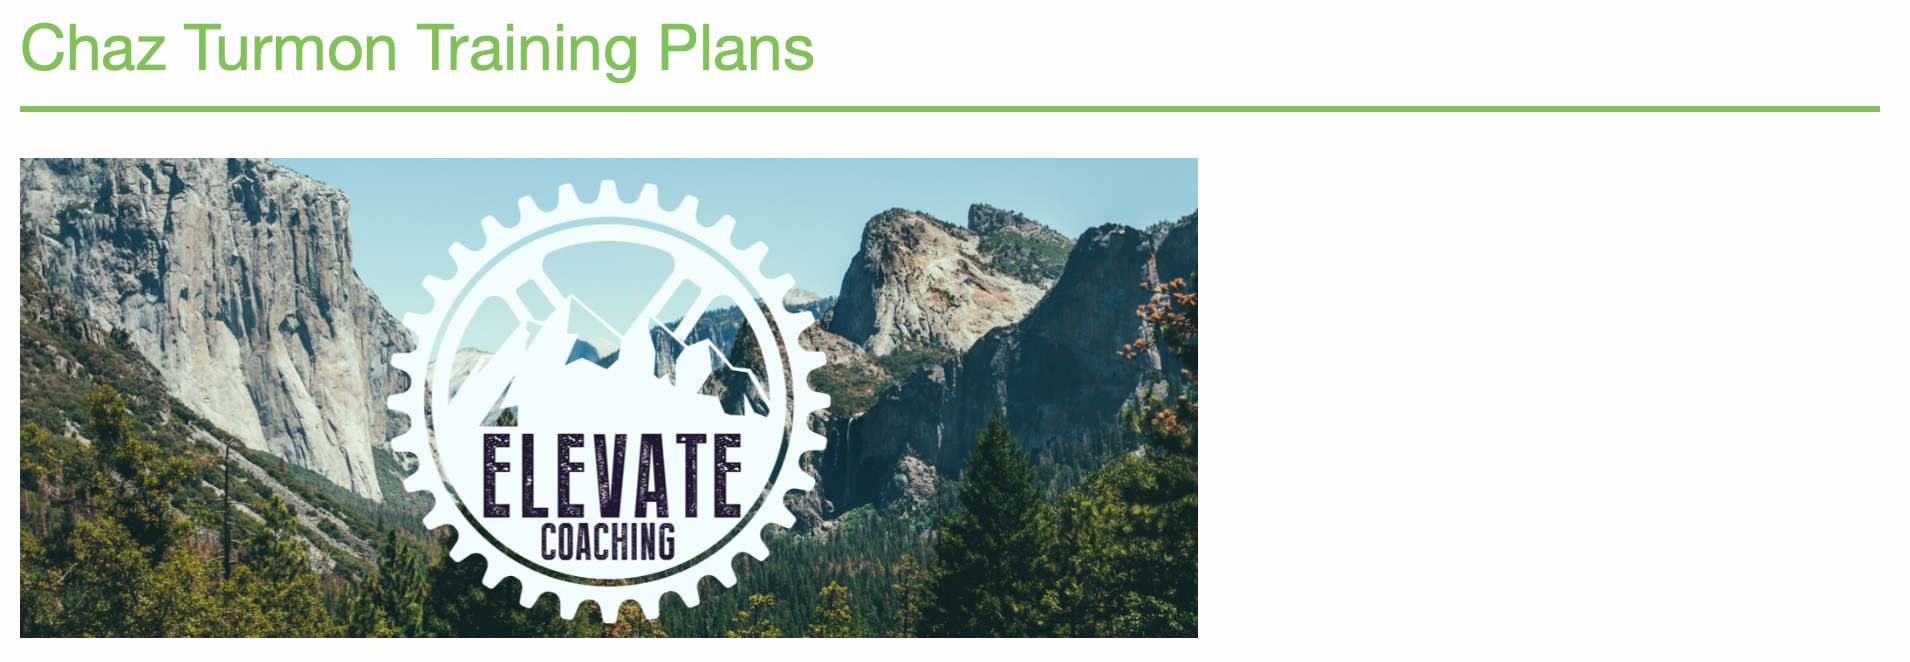 Elevate Coaching Cycling Training plans